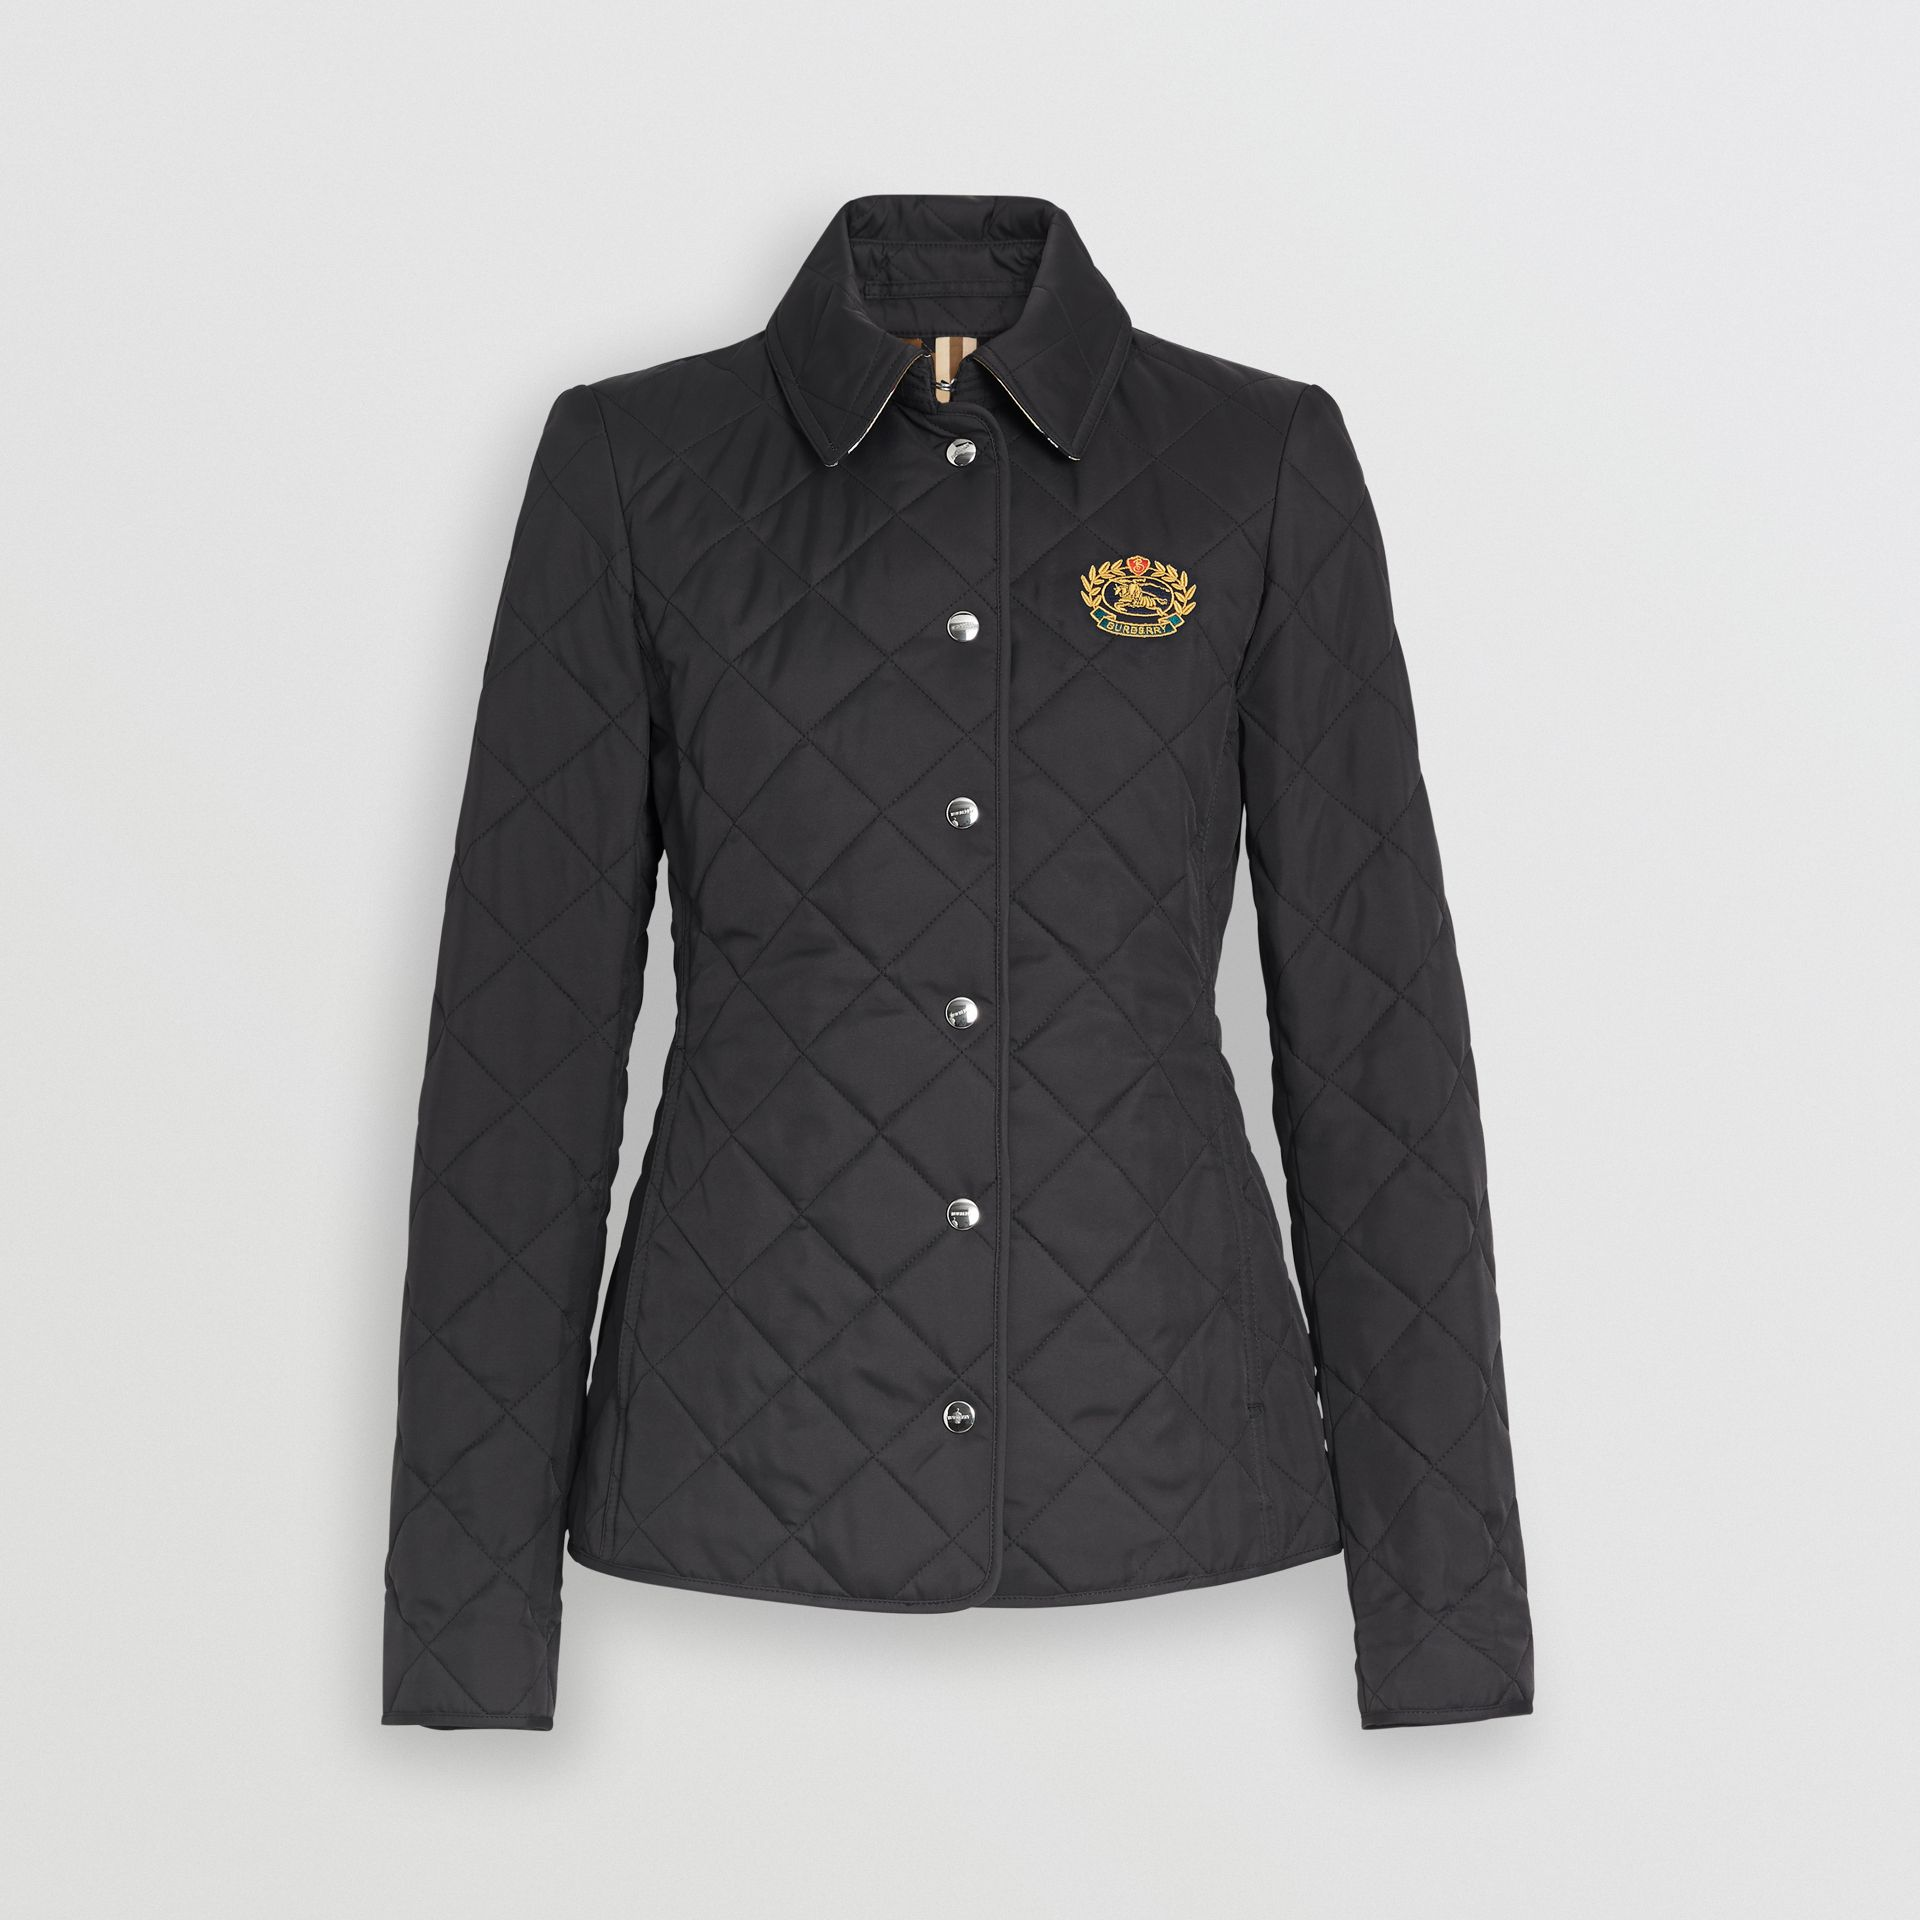 Embroidered Crest Diamond Quilted Jacket in Black - Women | Burberry United Kingdom - gallery image 3